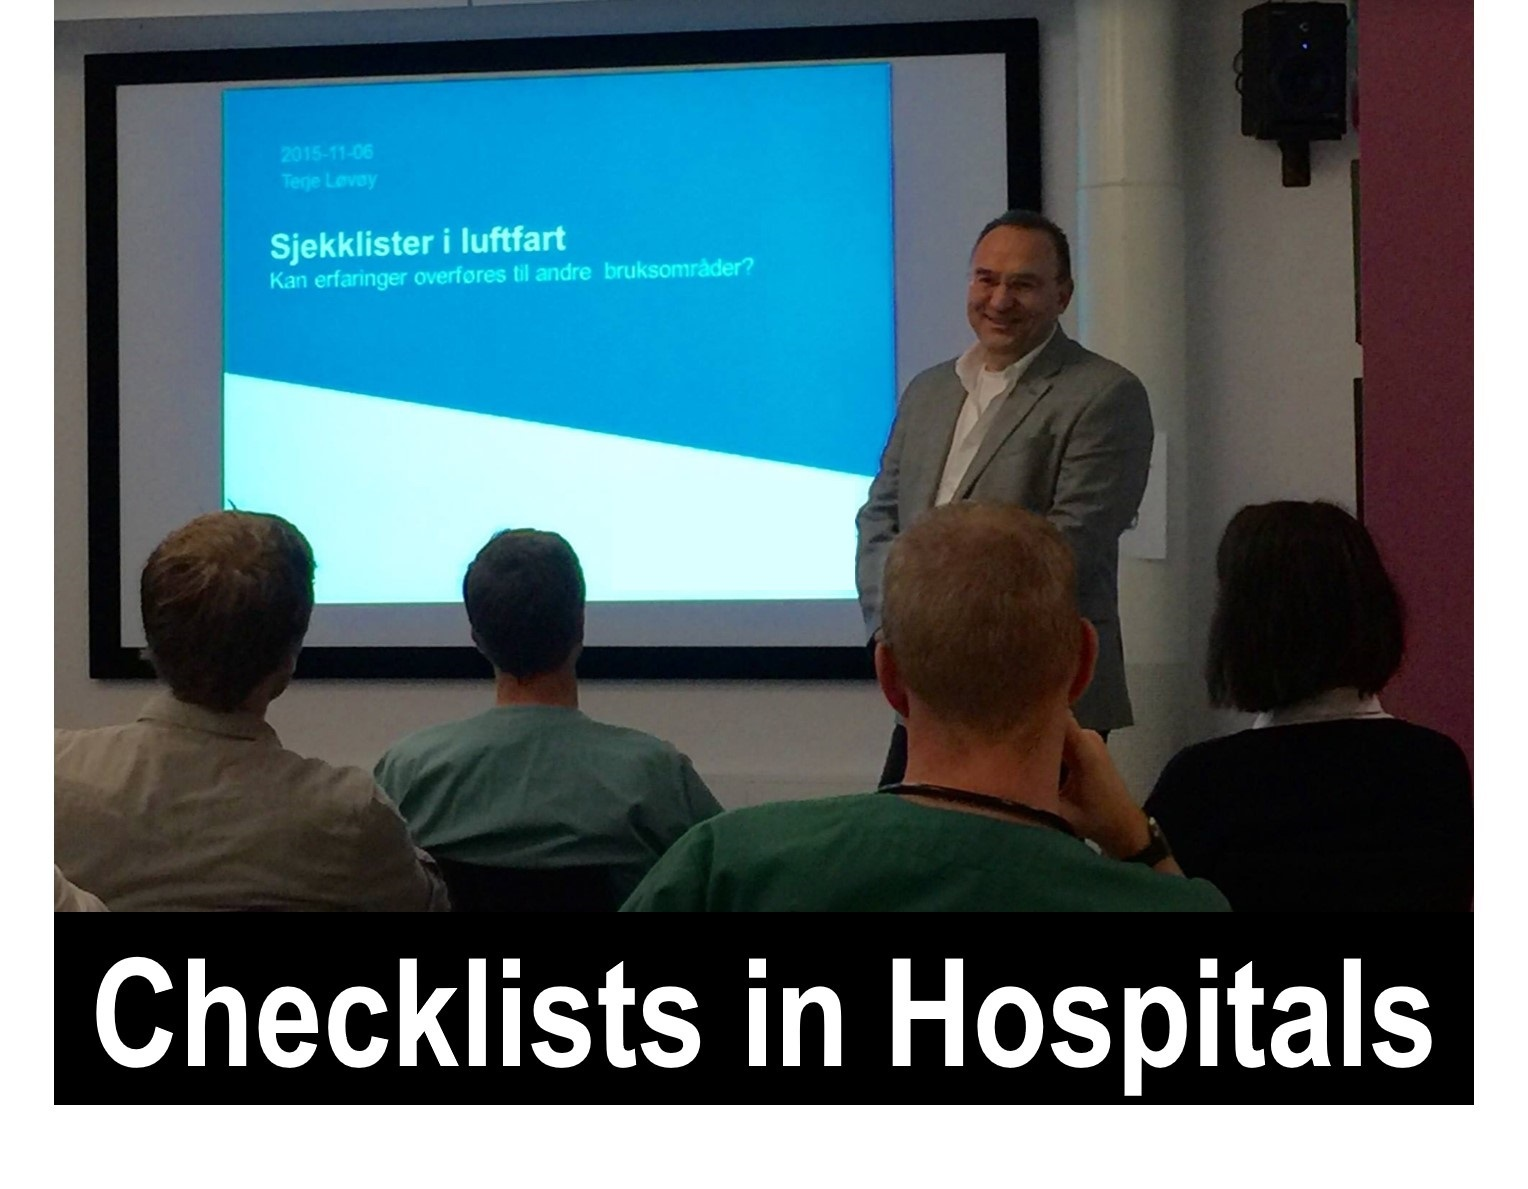 Checklists in Hospitals